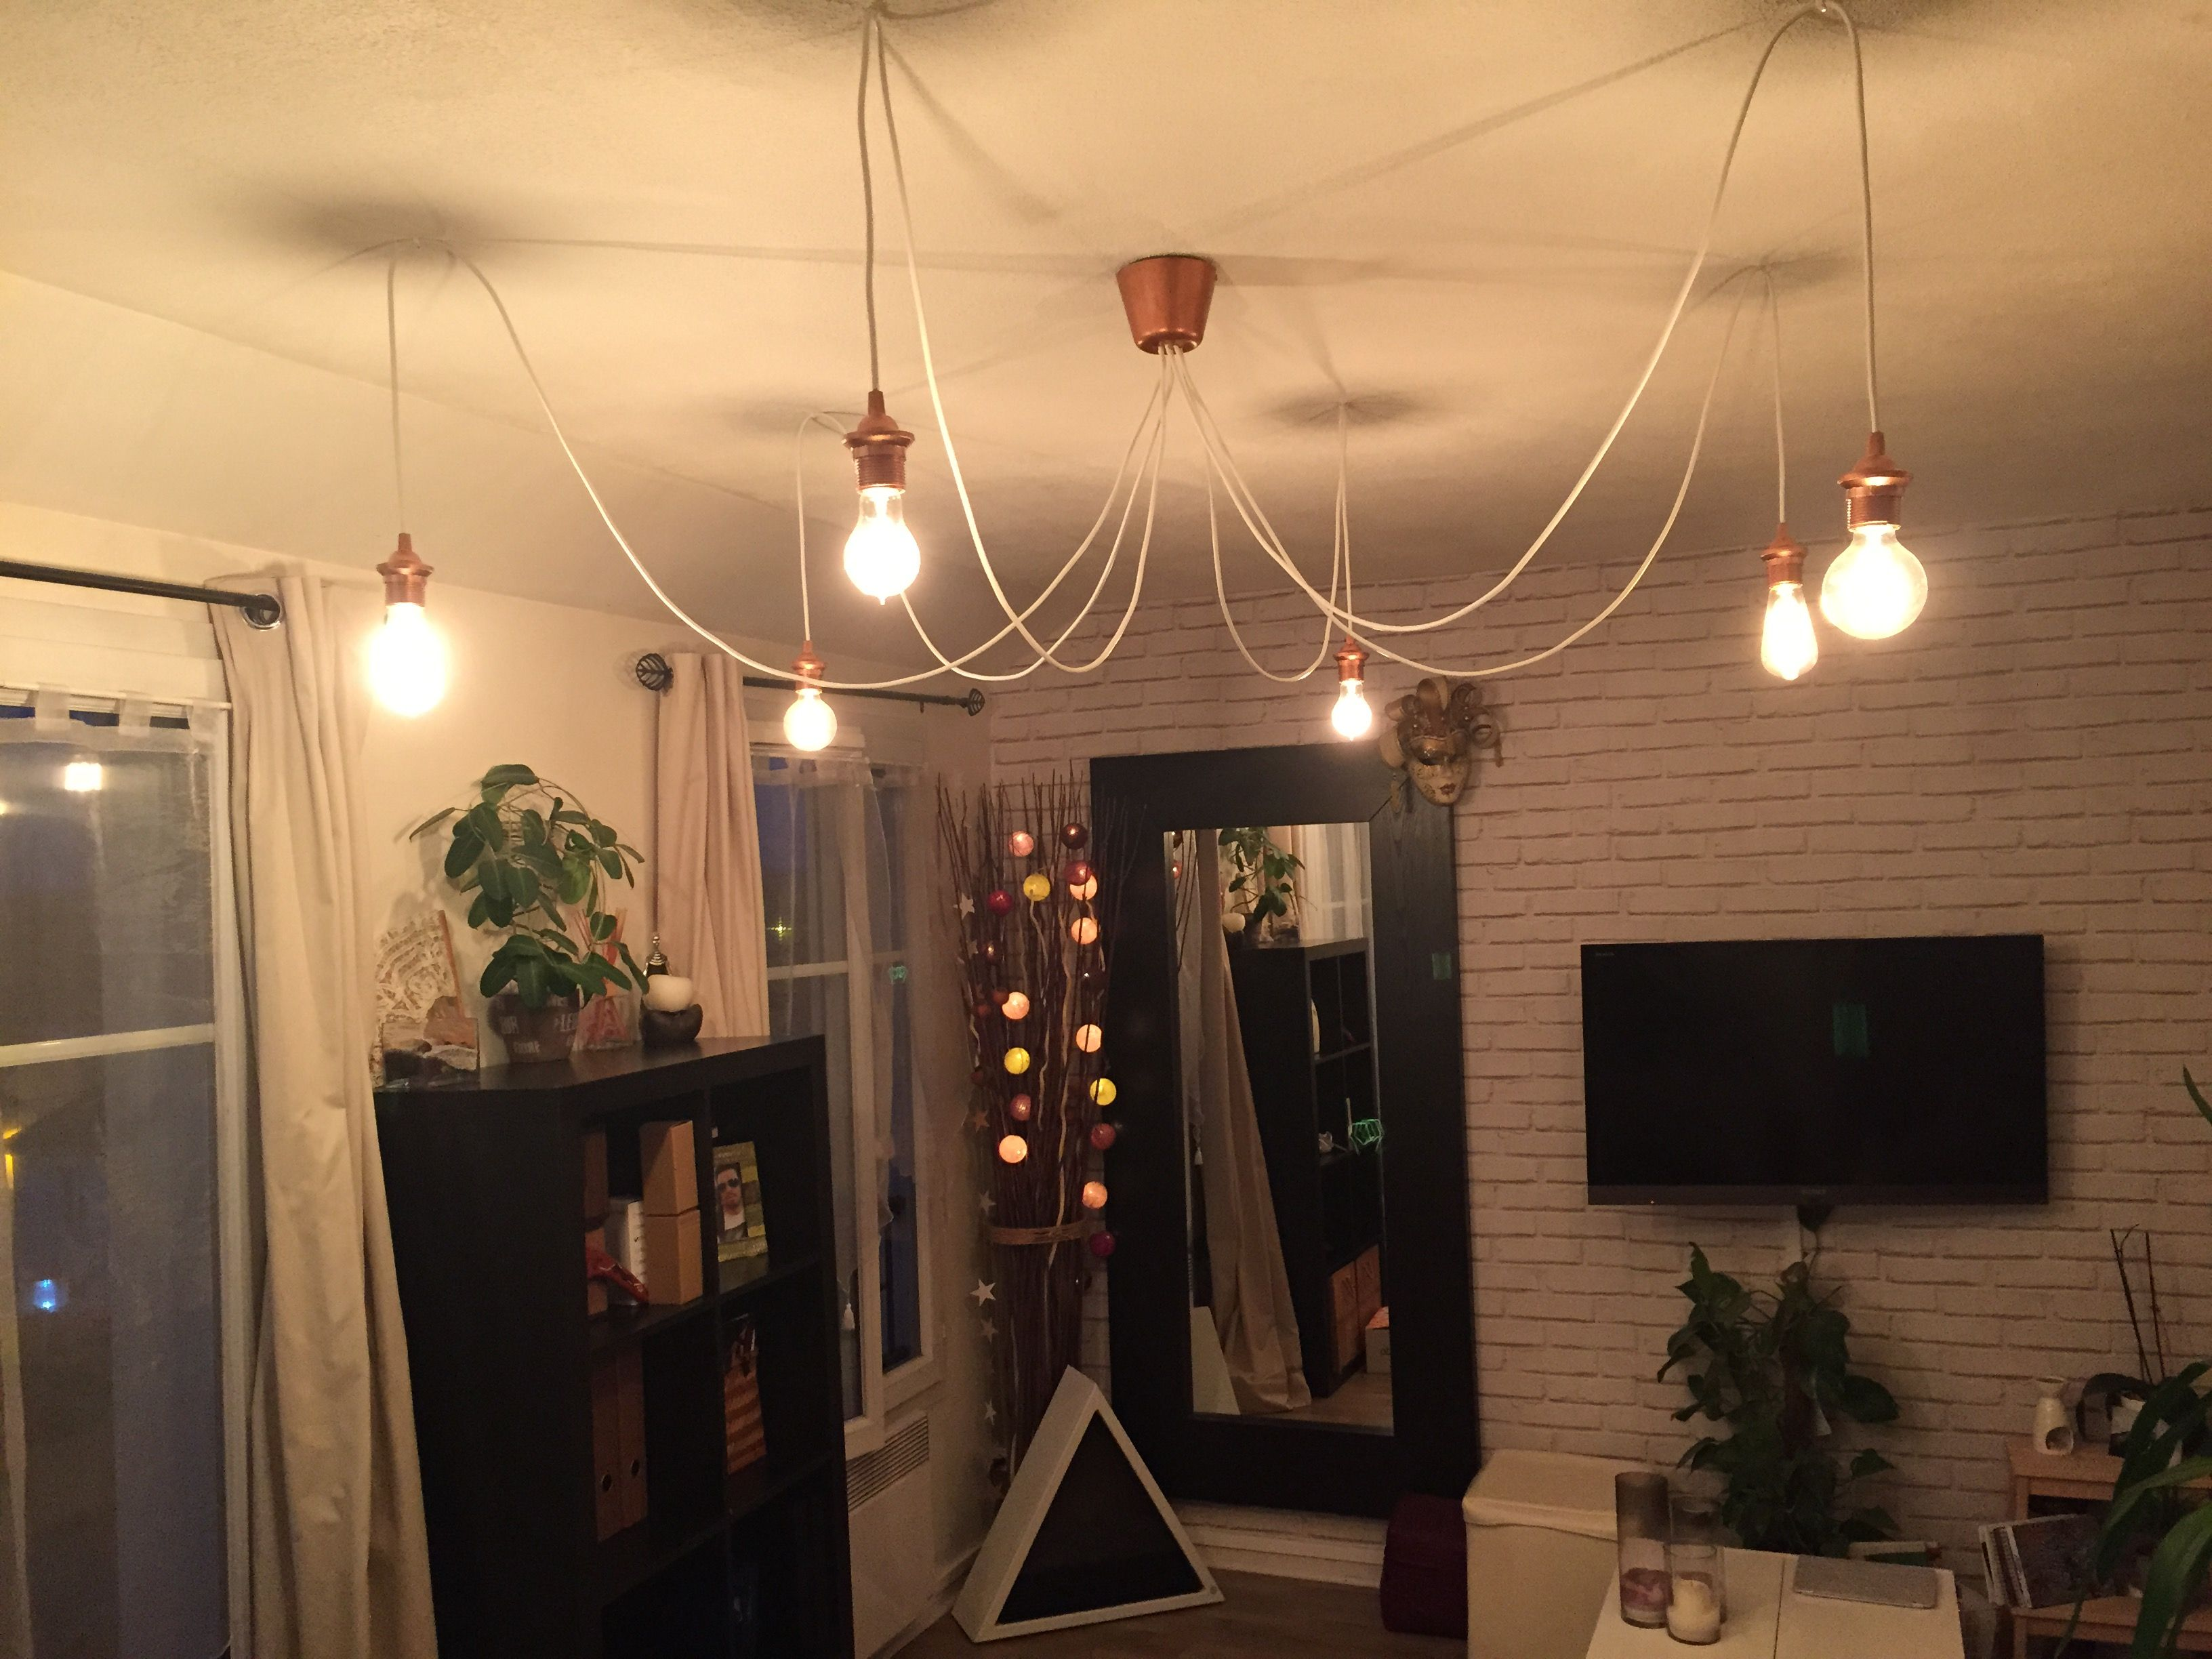 Luminaire style araign e homemade partir des for Luminaire suspension salon